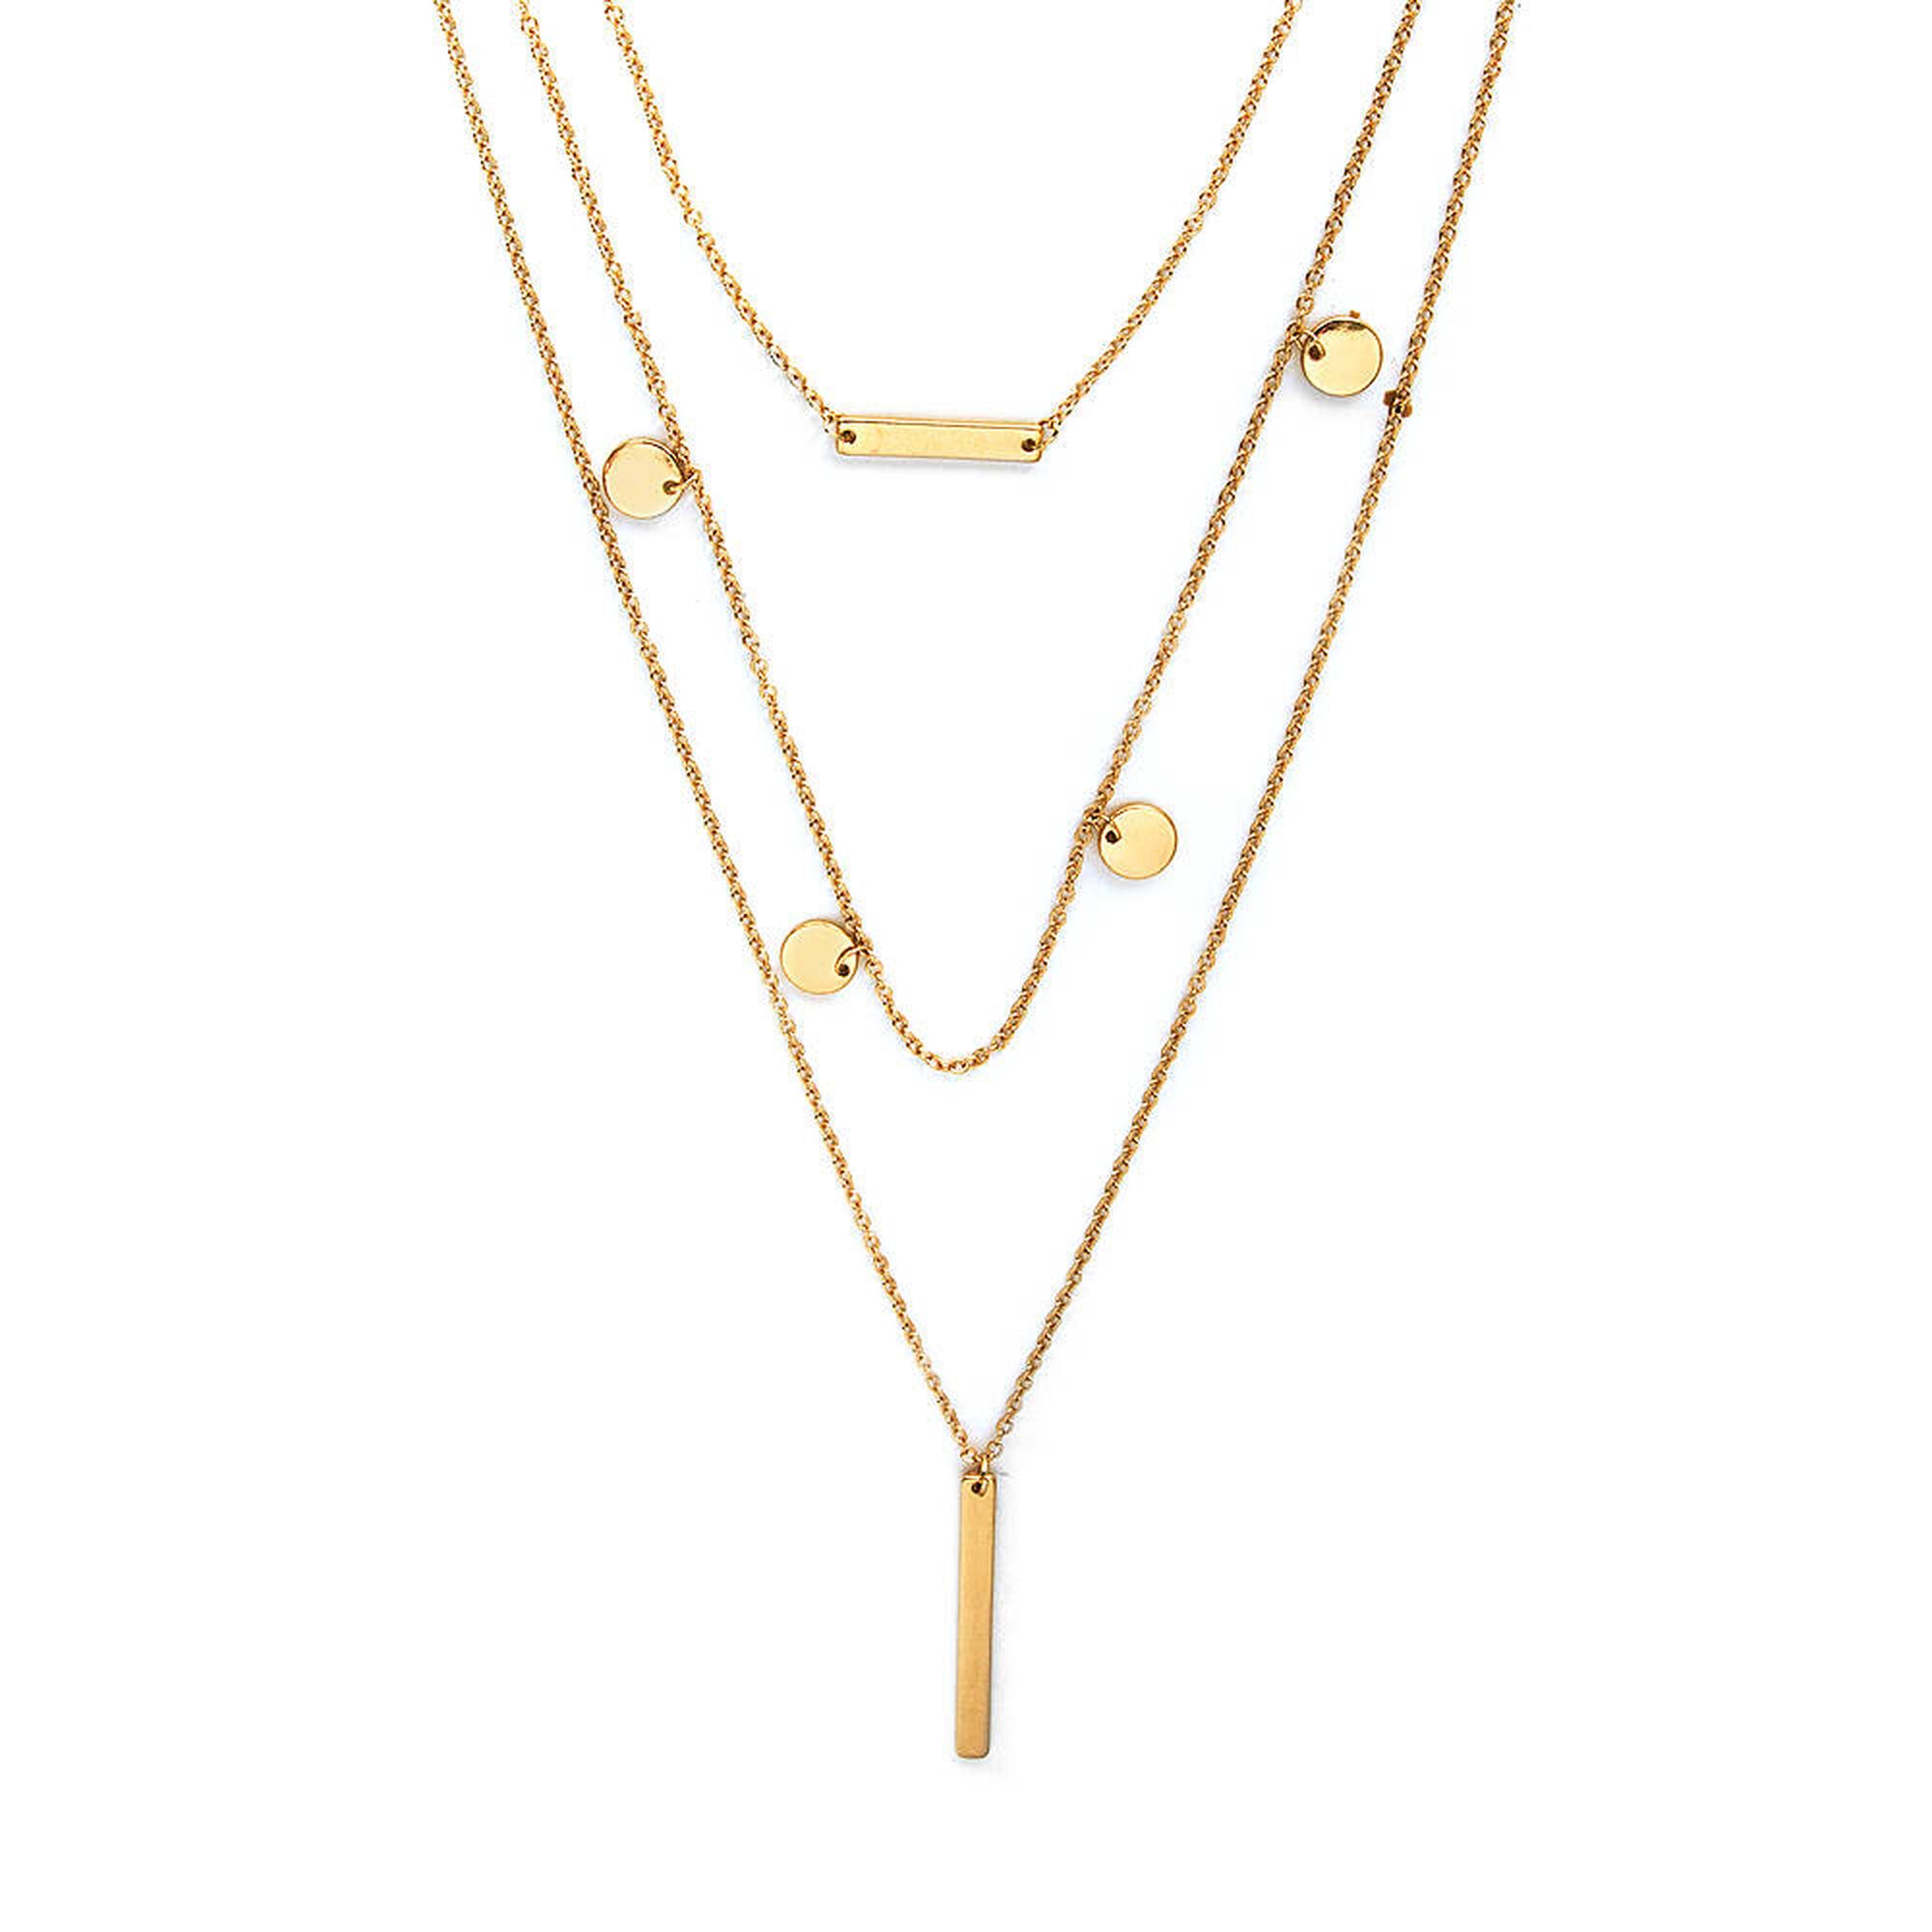 pendant gold jewelry plain necklace handmade necklaces bar